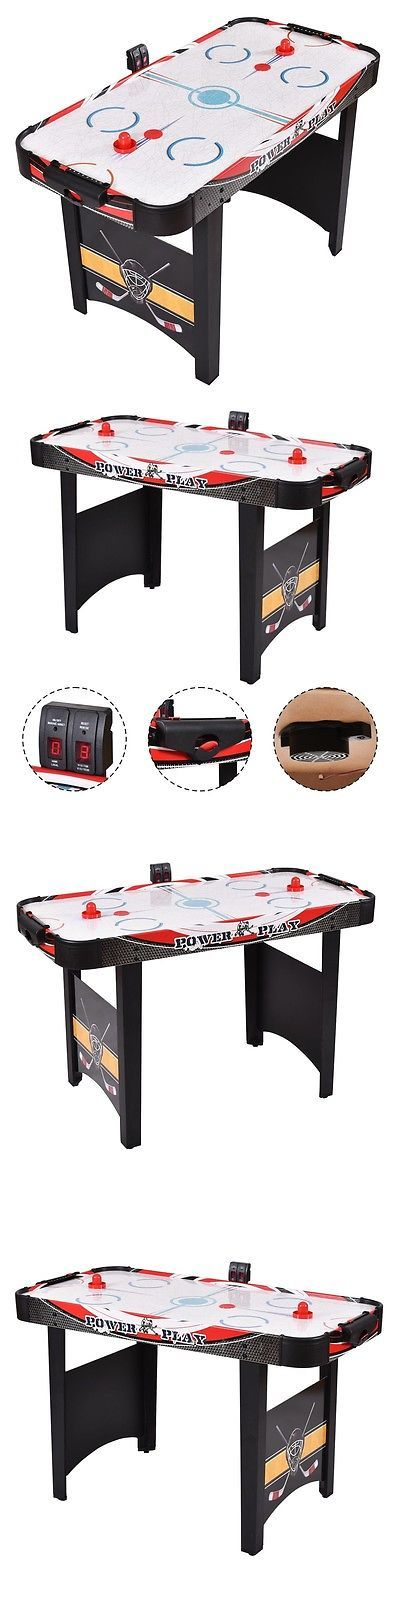 Air Hockey 36275: Electronic 48Air Powered Hockey Table Sports Game Scoring Red Puck Kids Indoor BUY IT NOW ONLY: $76.19